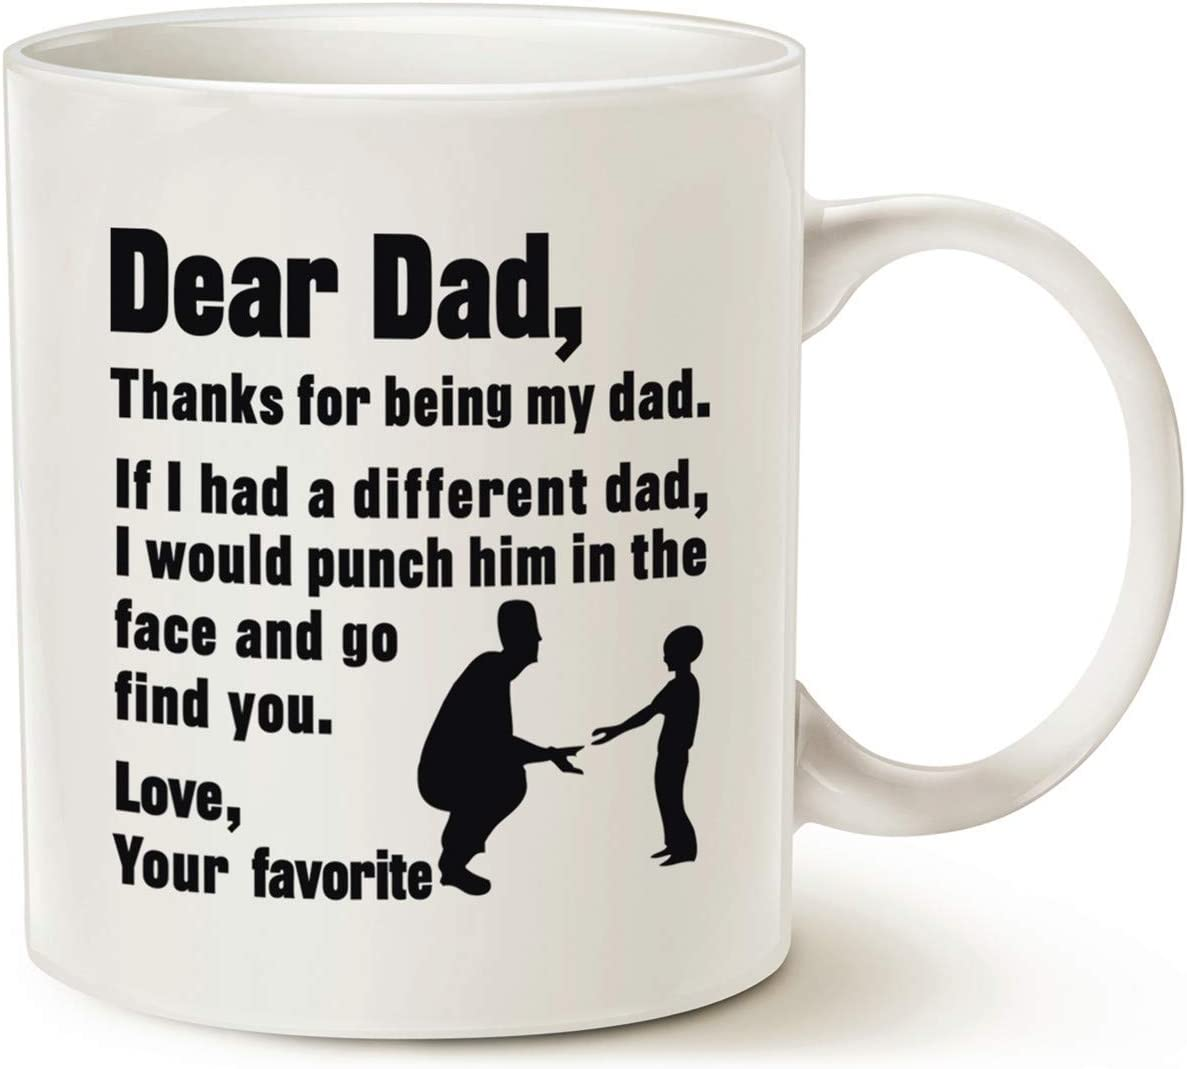 Amazon Com Mauag Funny Fathers Day For Dad Coffee Mug Dear Dad Thanks For Being Love Your Favorite Best Gifts For Dad Father Cup White 11 Oz Kitchen Dining